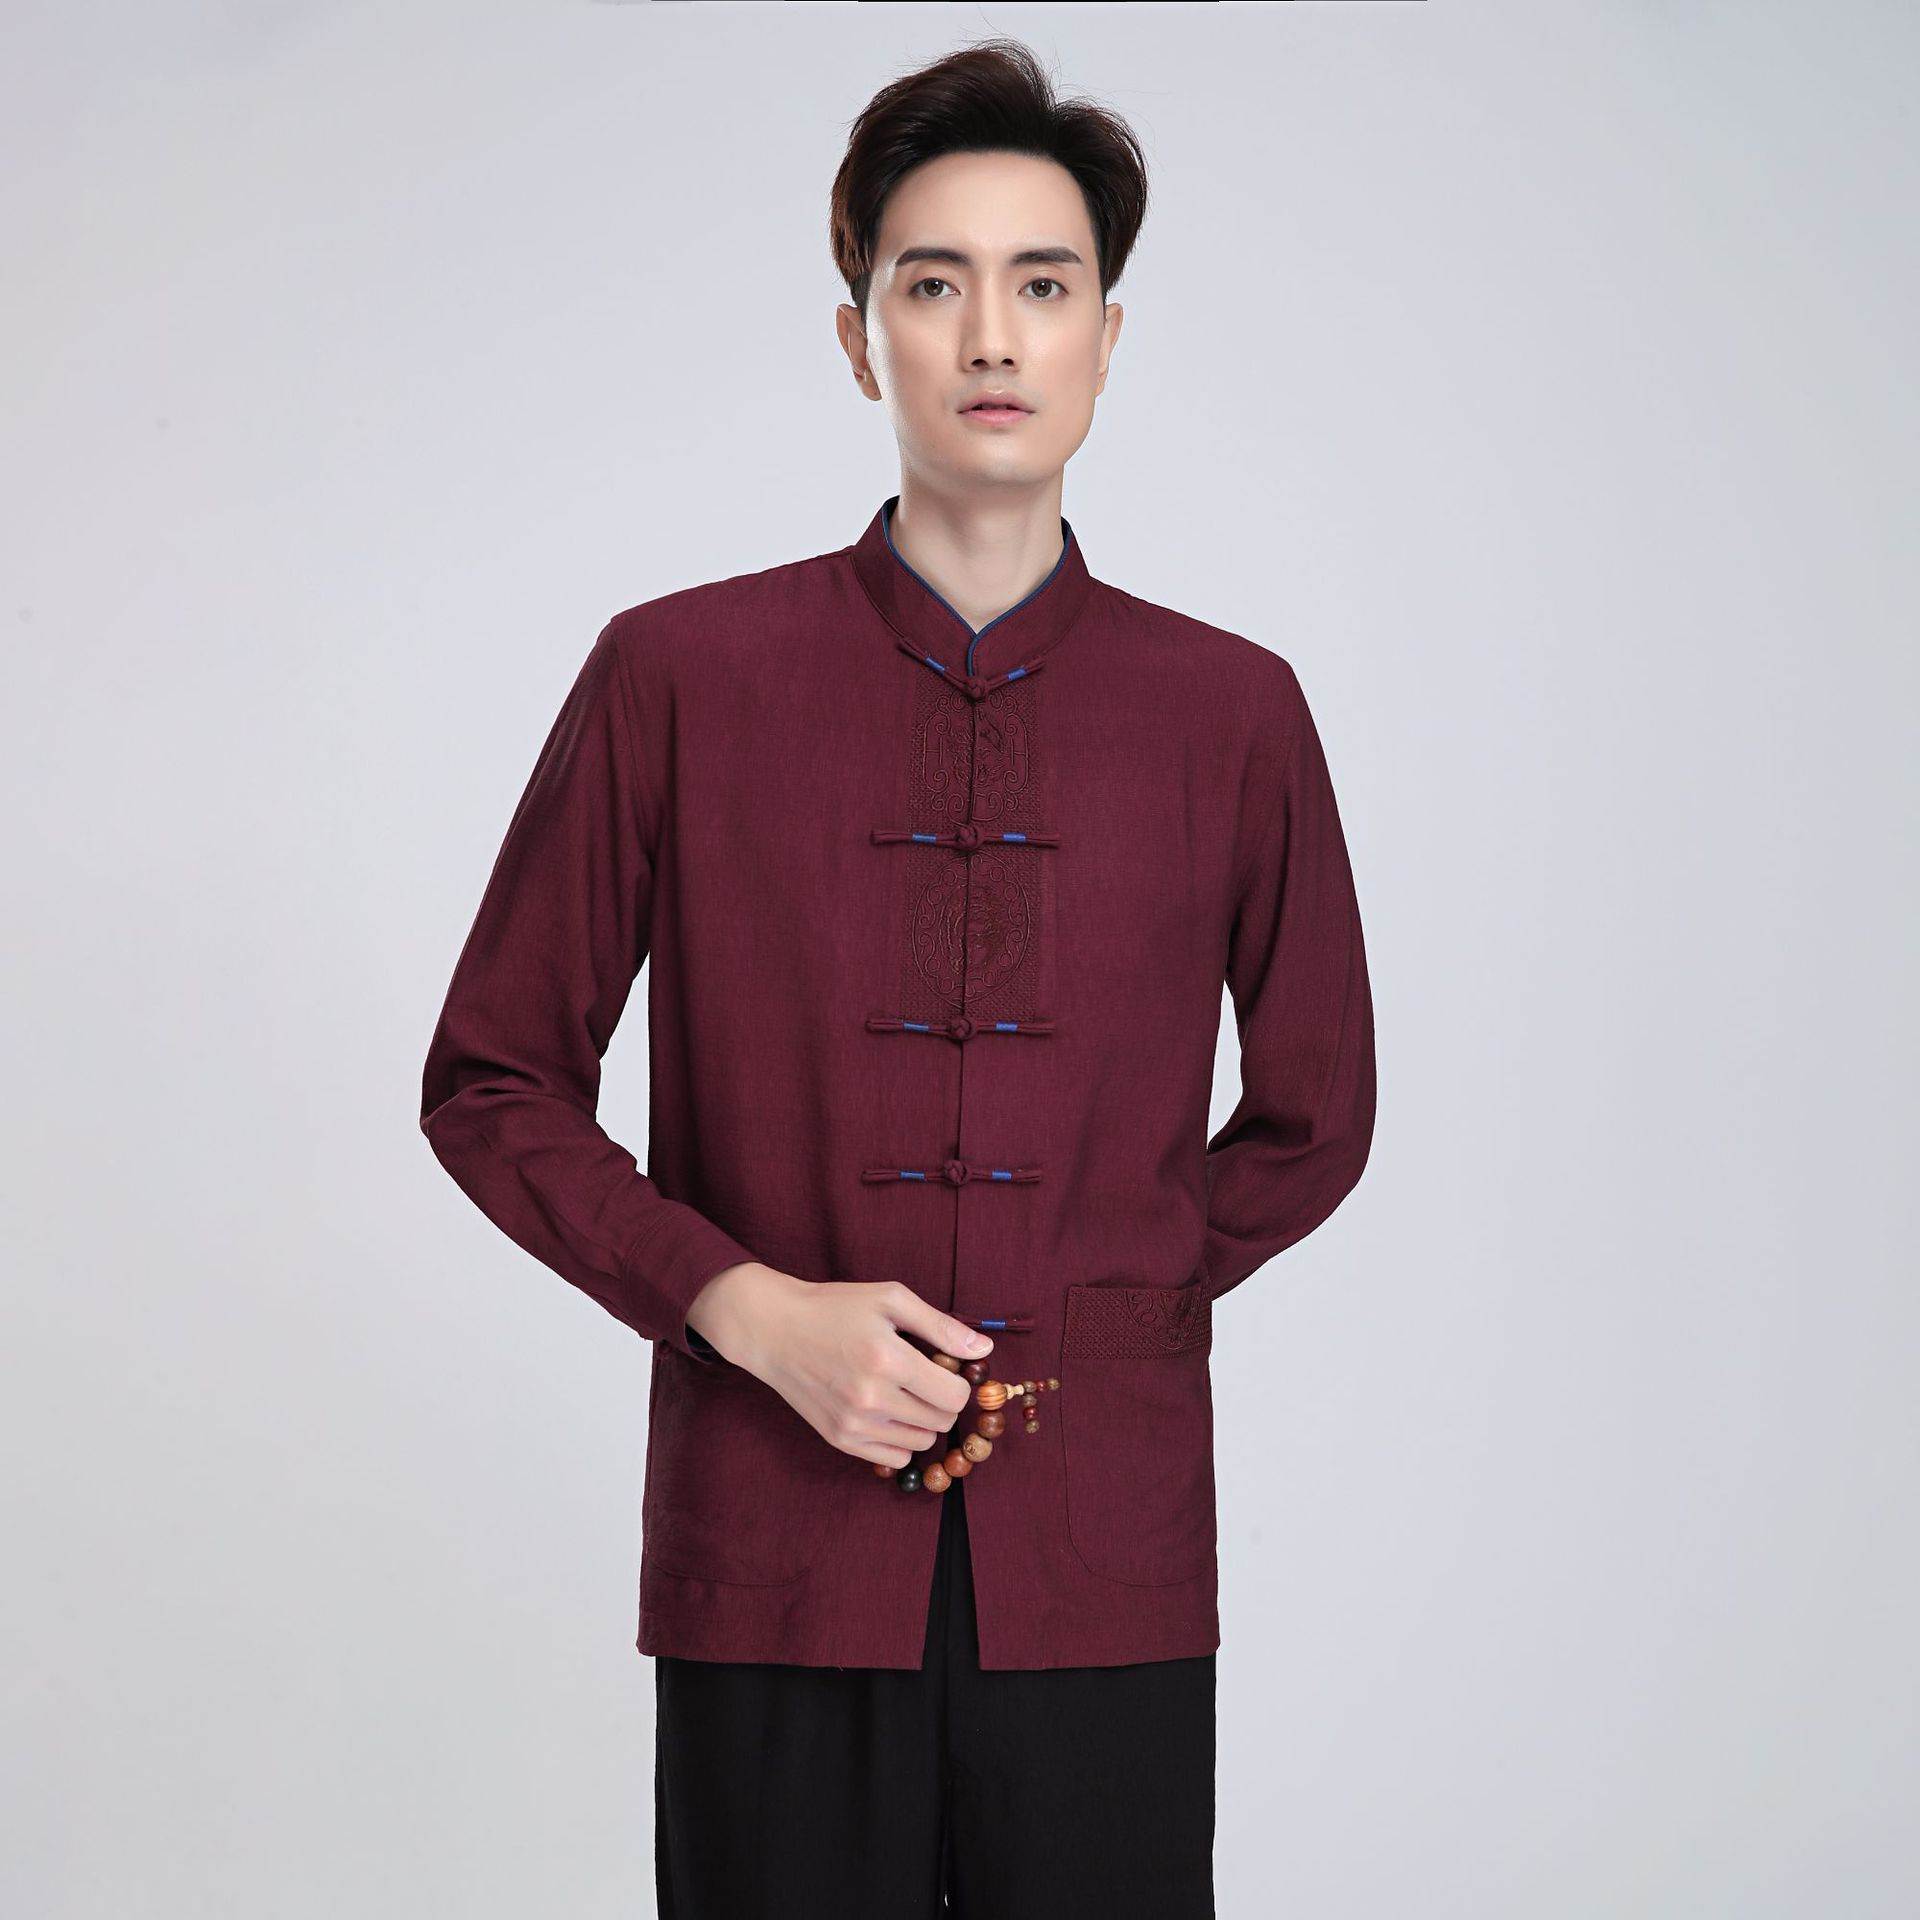 Chinese-style Chinese Style Flax 2814-2 Chinese Costume MEN'S Long Sleeve Top Middle-aged Long-sleeved Shirt/Set